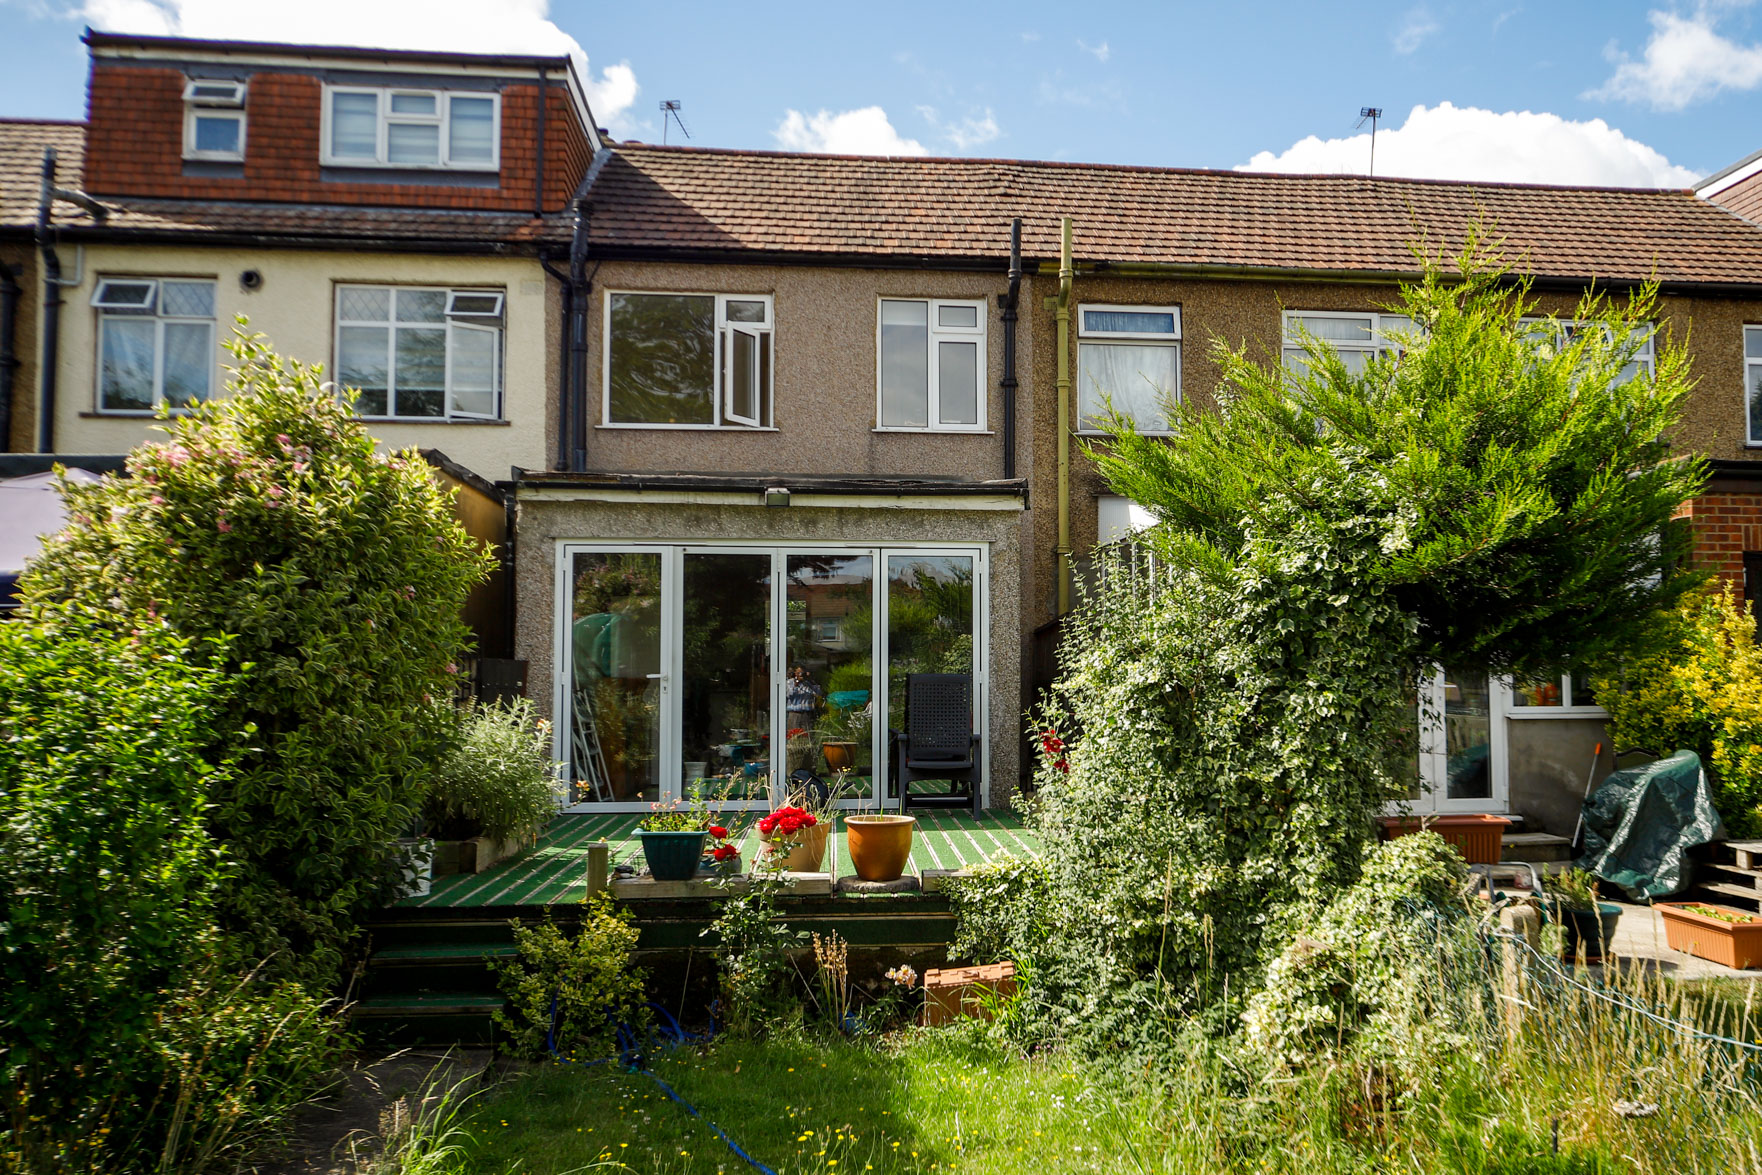 customer_1/branch_2/client_43249/sale_property/_MG_7110_1593774321.jpeg